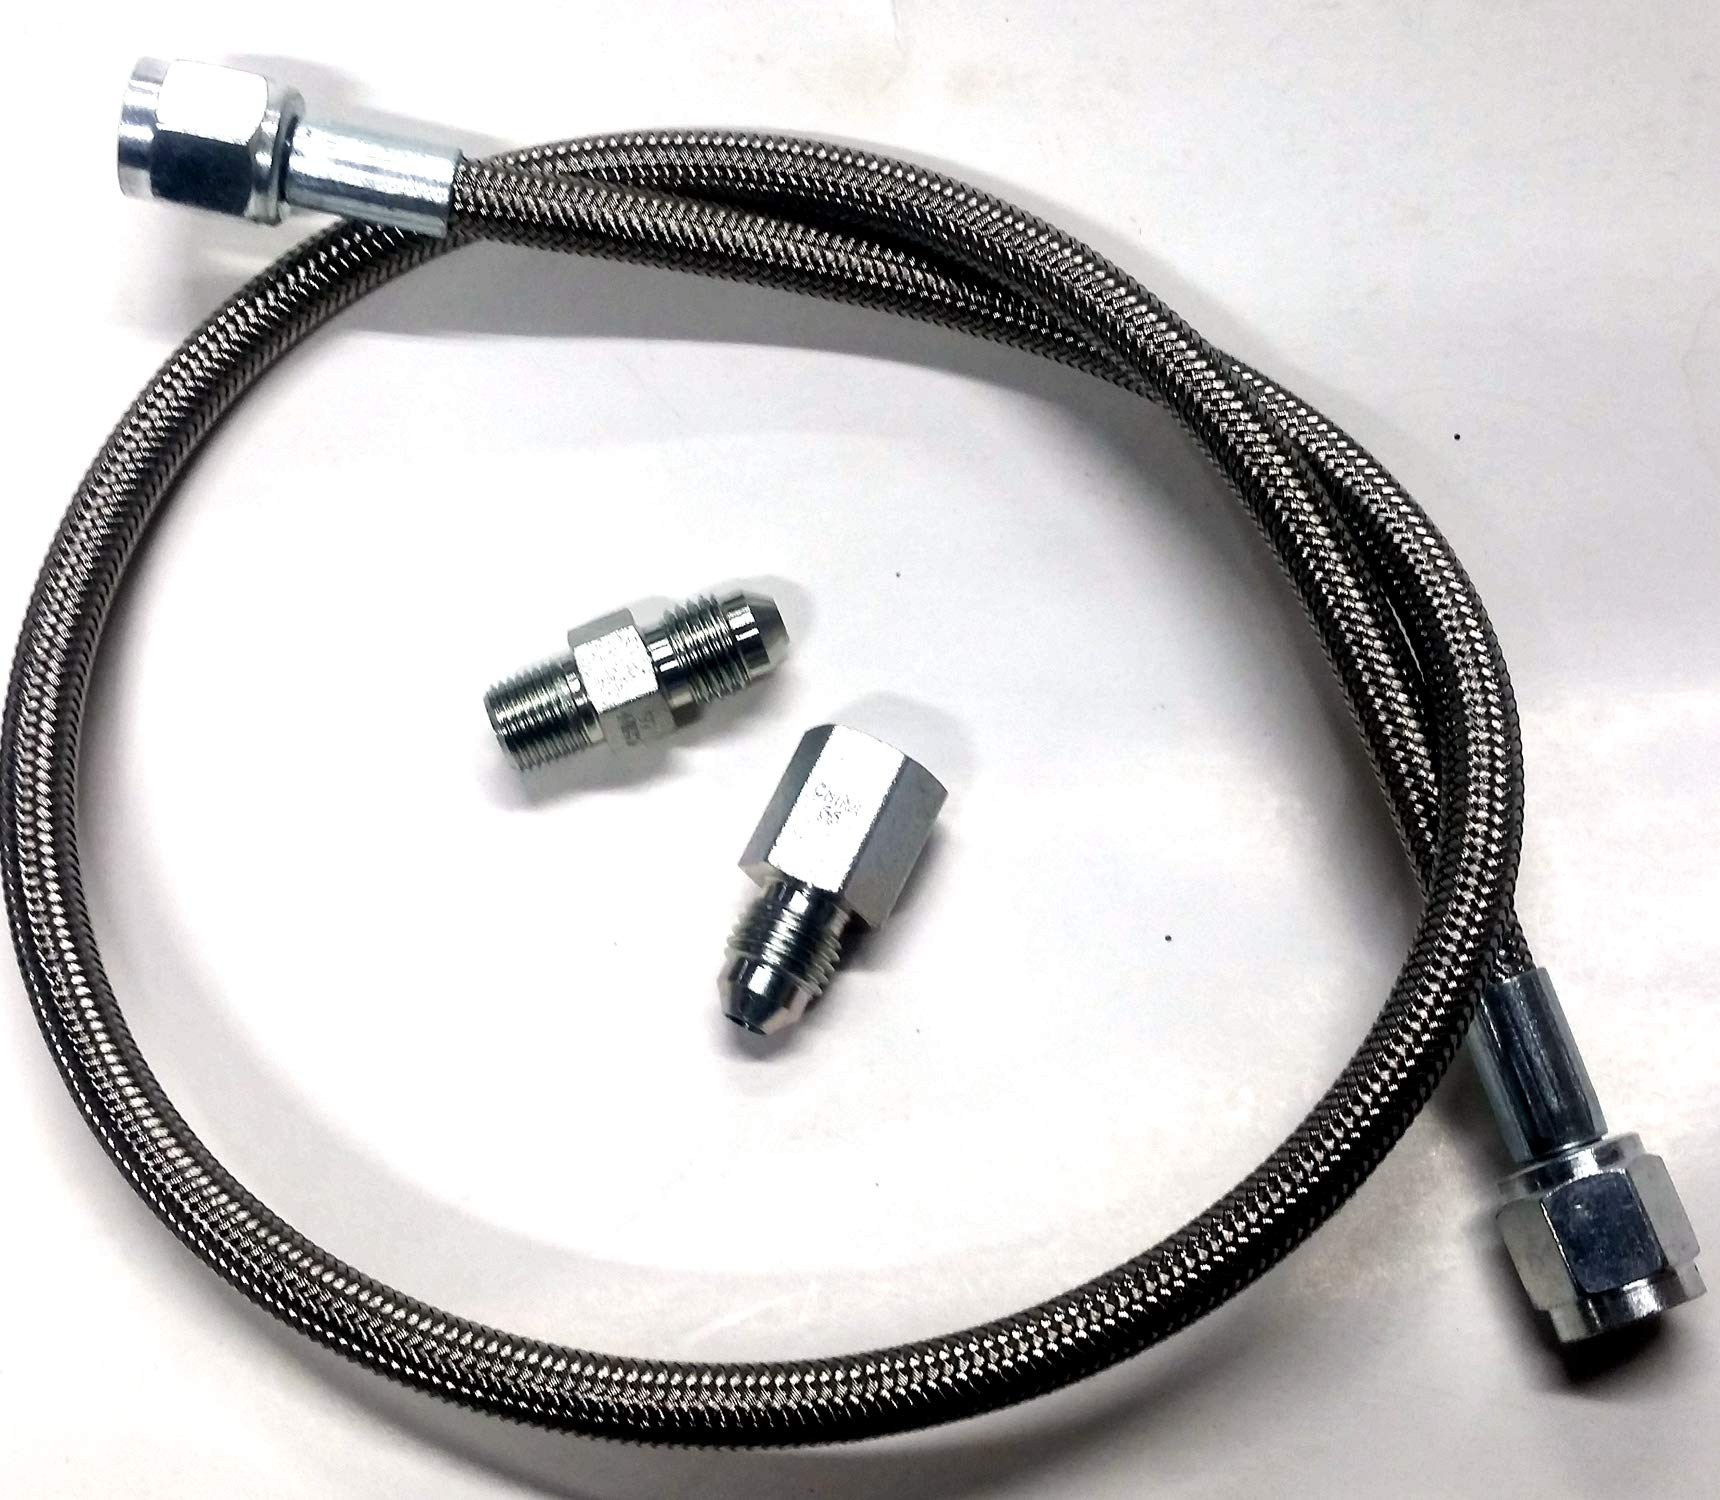 HDM 24'' x 4AN Oil/Fuel Pressure Gauge Line Hose & #4 an Fittings Kit IMCA UMP SBC ... by HDM Performance Parts